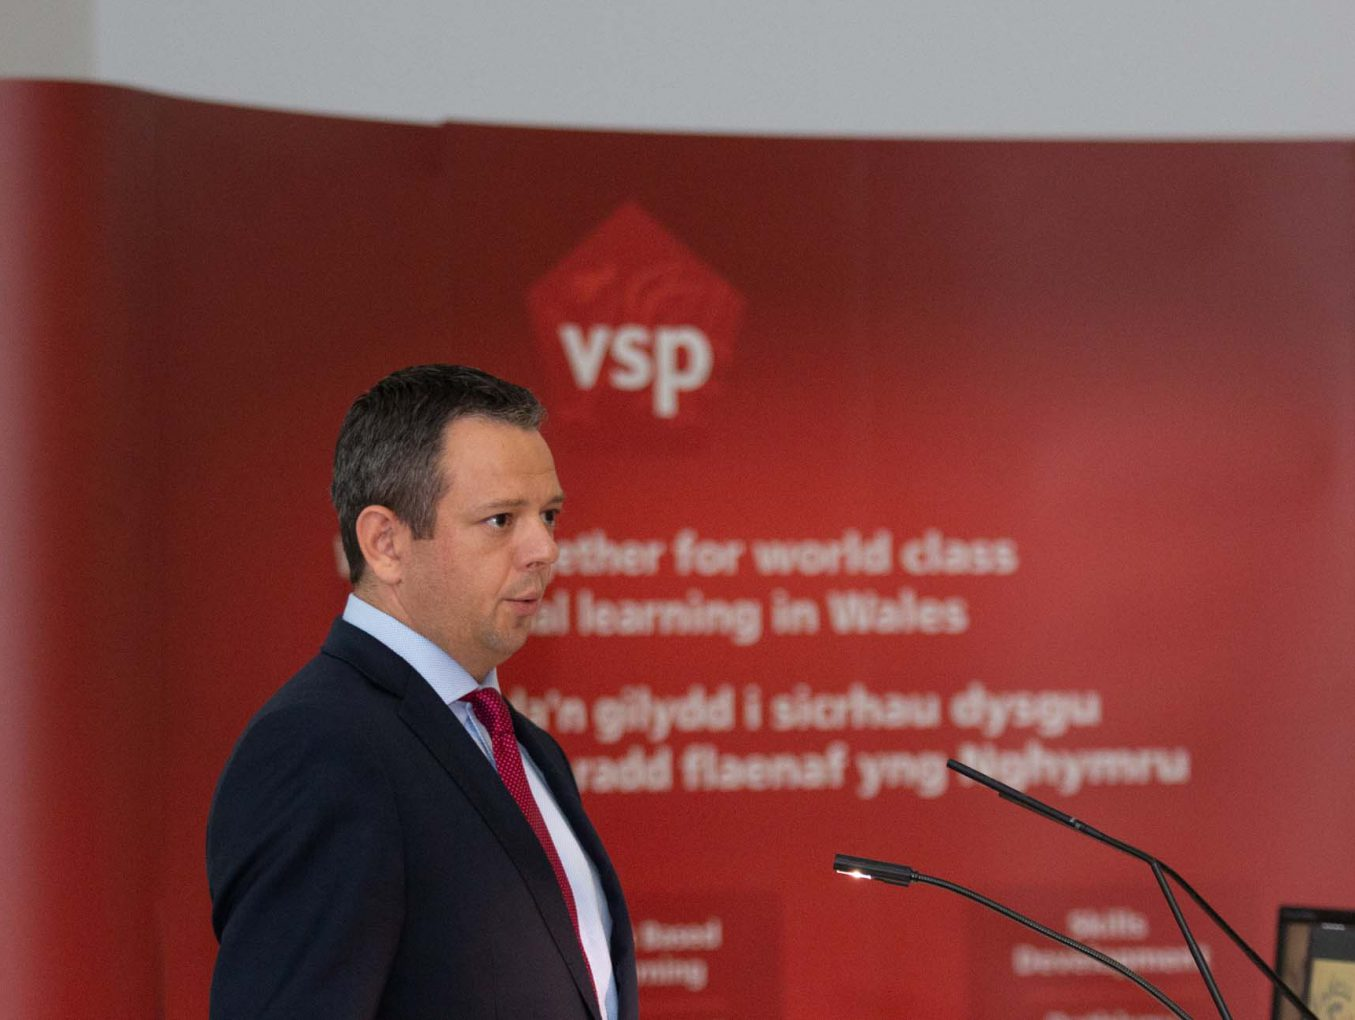 Iain Salisbury VSP Celebration